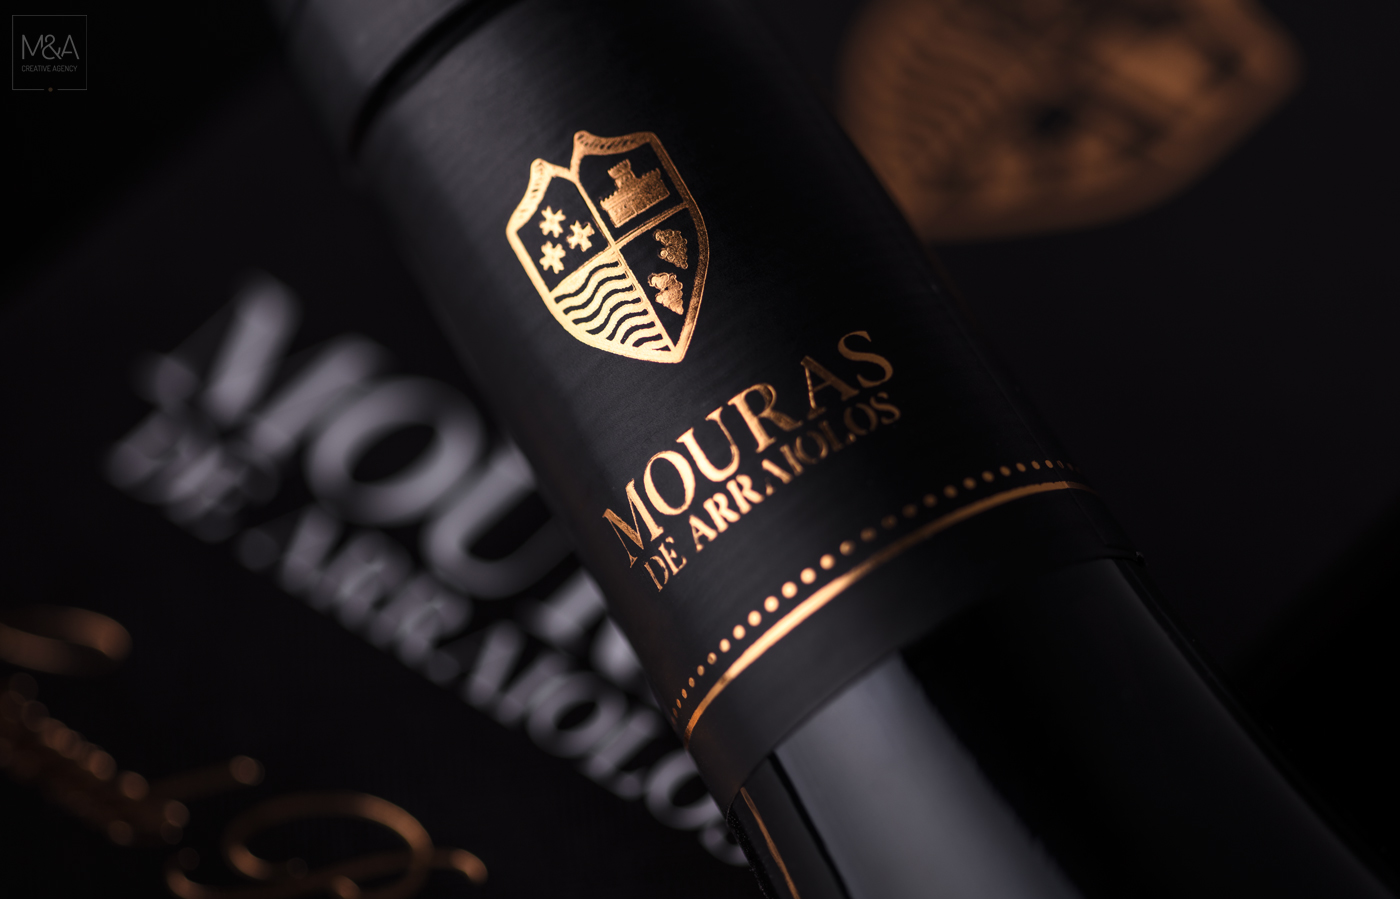 """A Label that Tells the History of a """"Grande Reserva"""" from Alentejo / World Brand Design Society"""